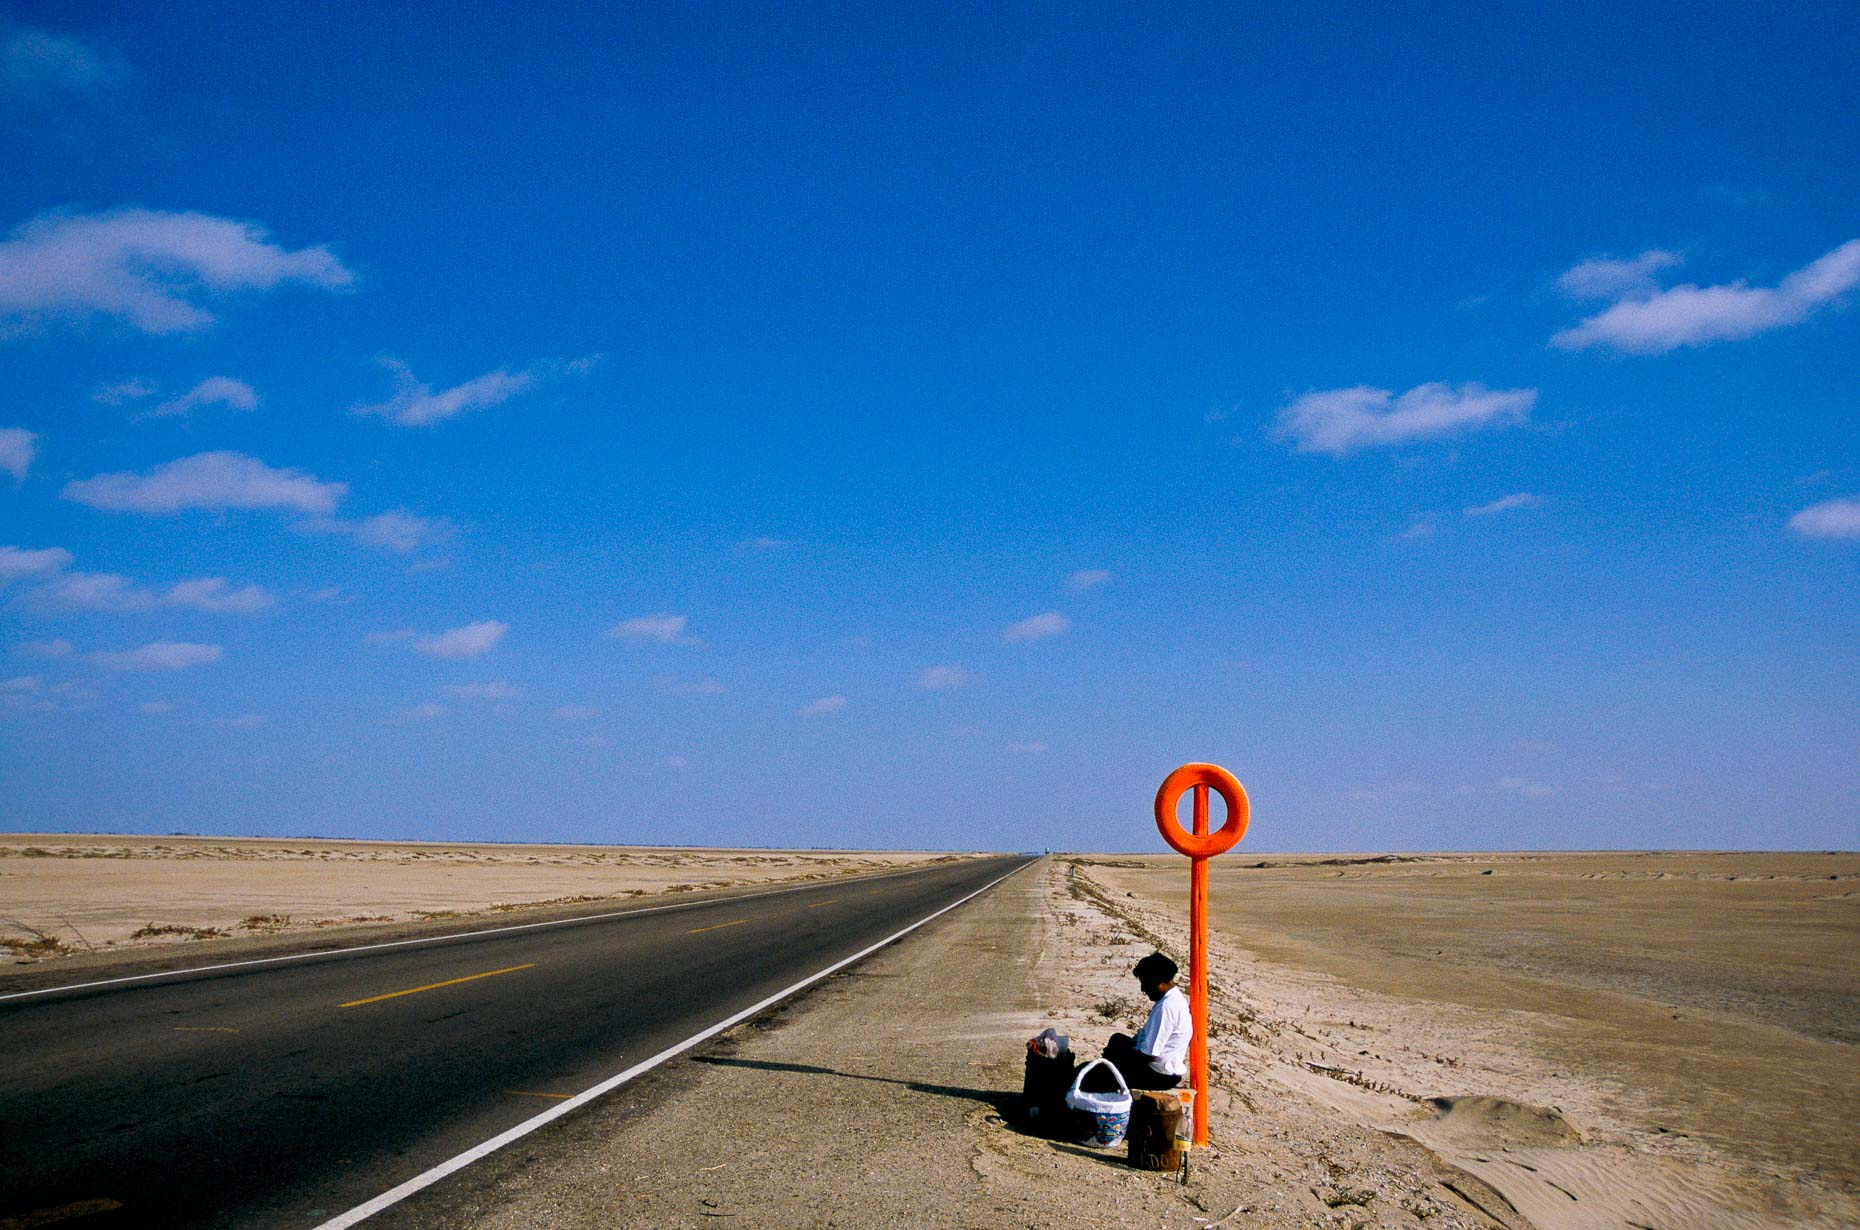 Bus stop in the desert, Peru, 2000